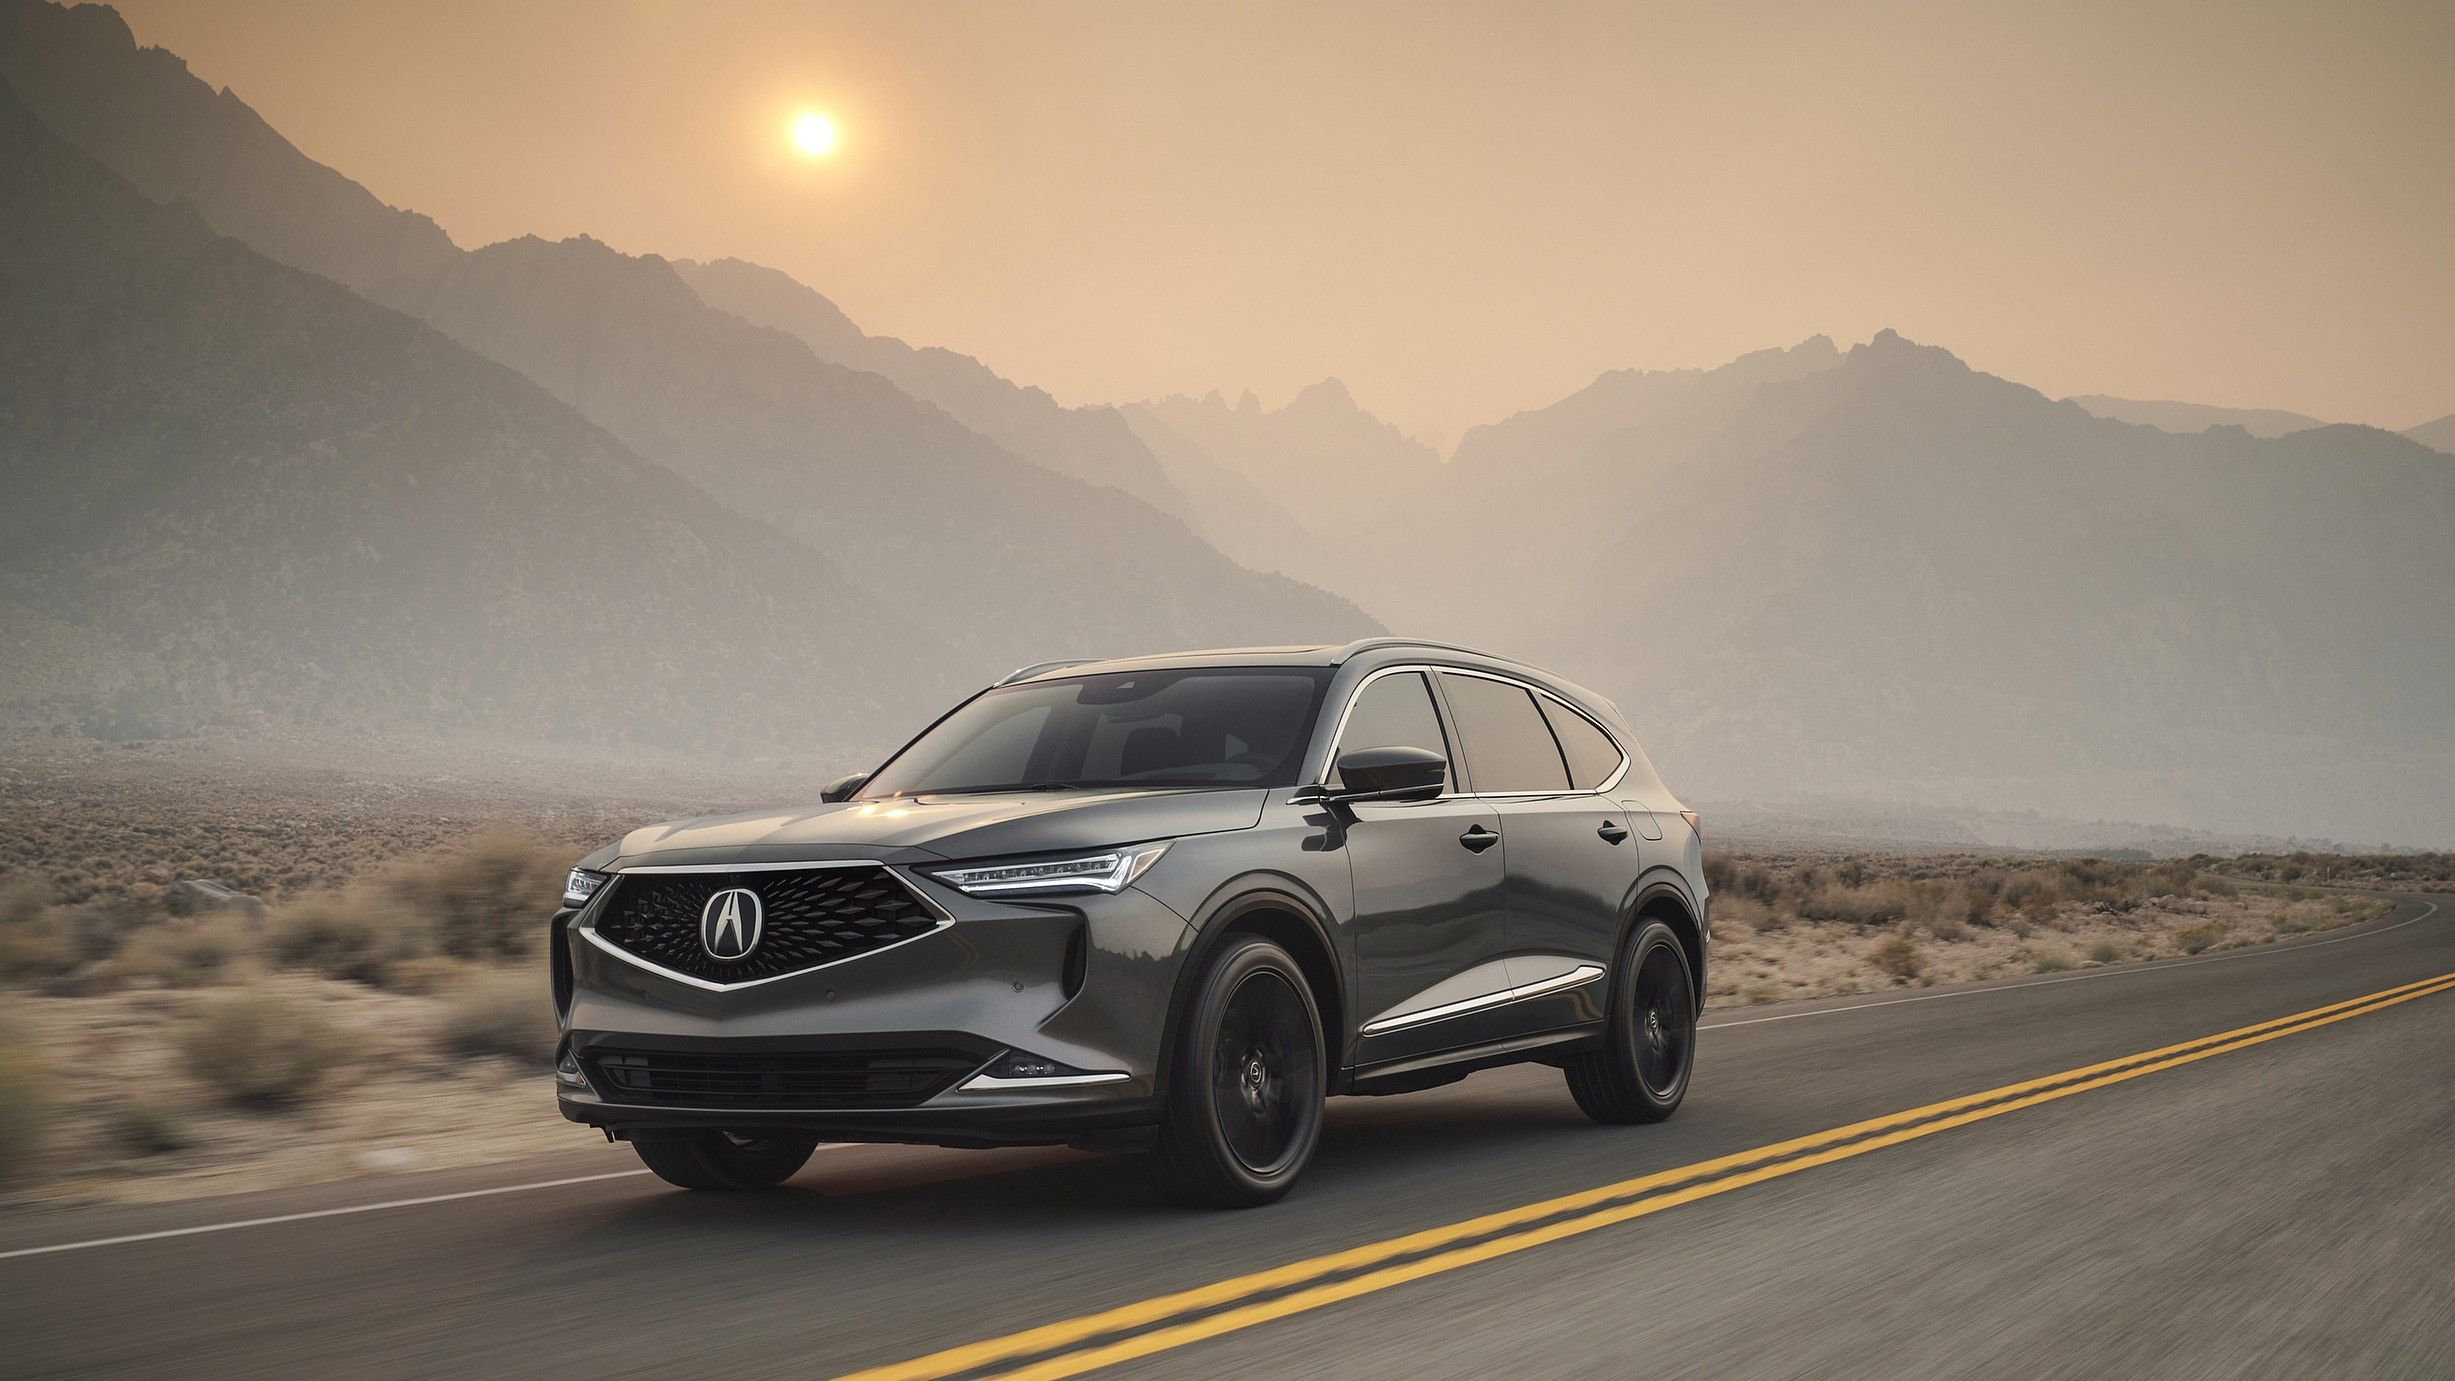 2022 acura mdx first look - price, release date, features